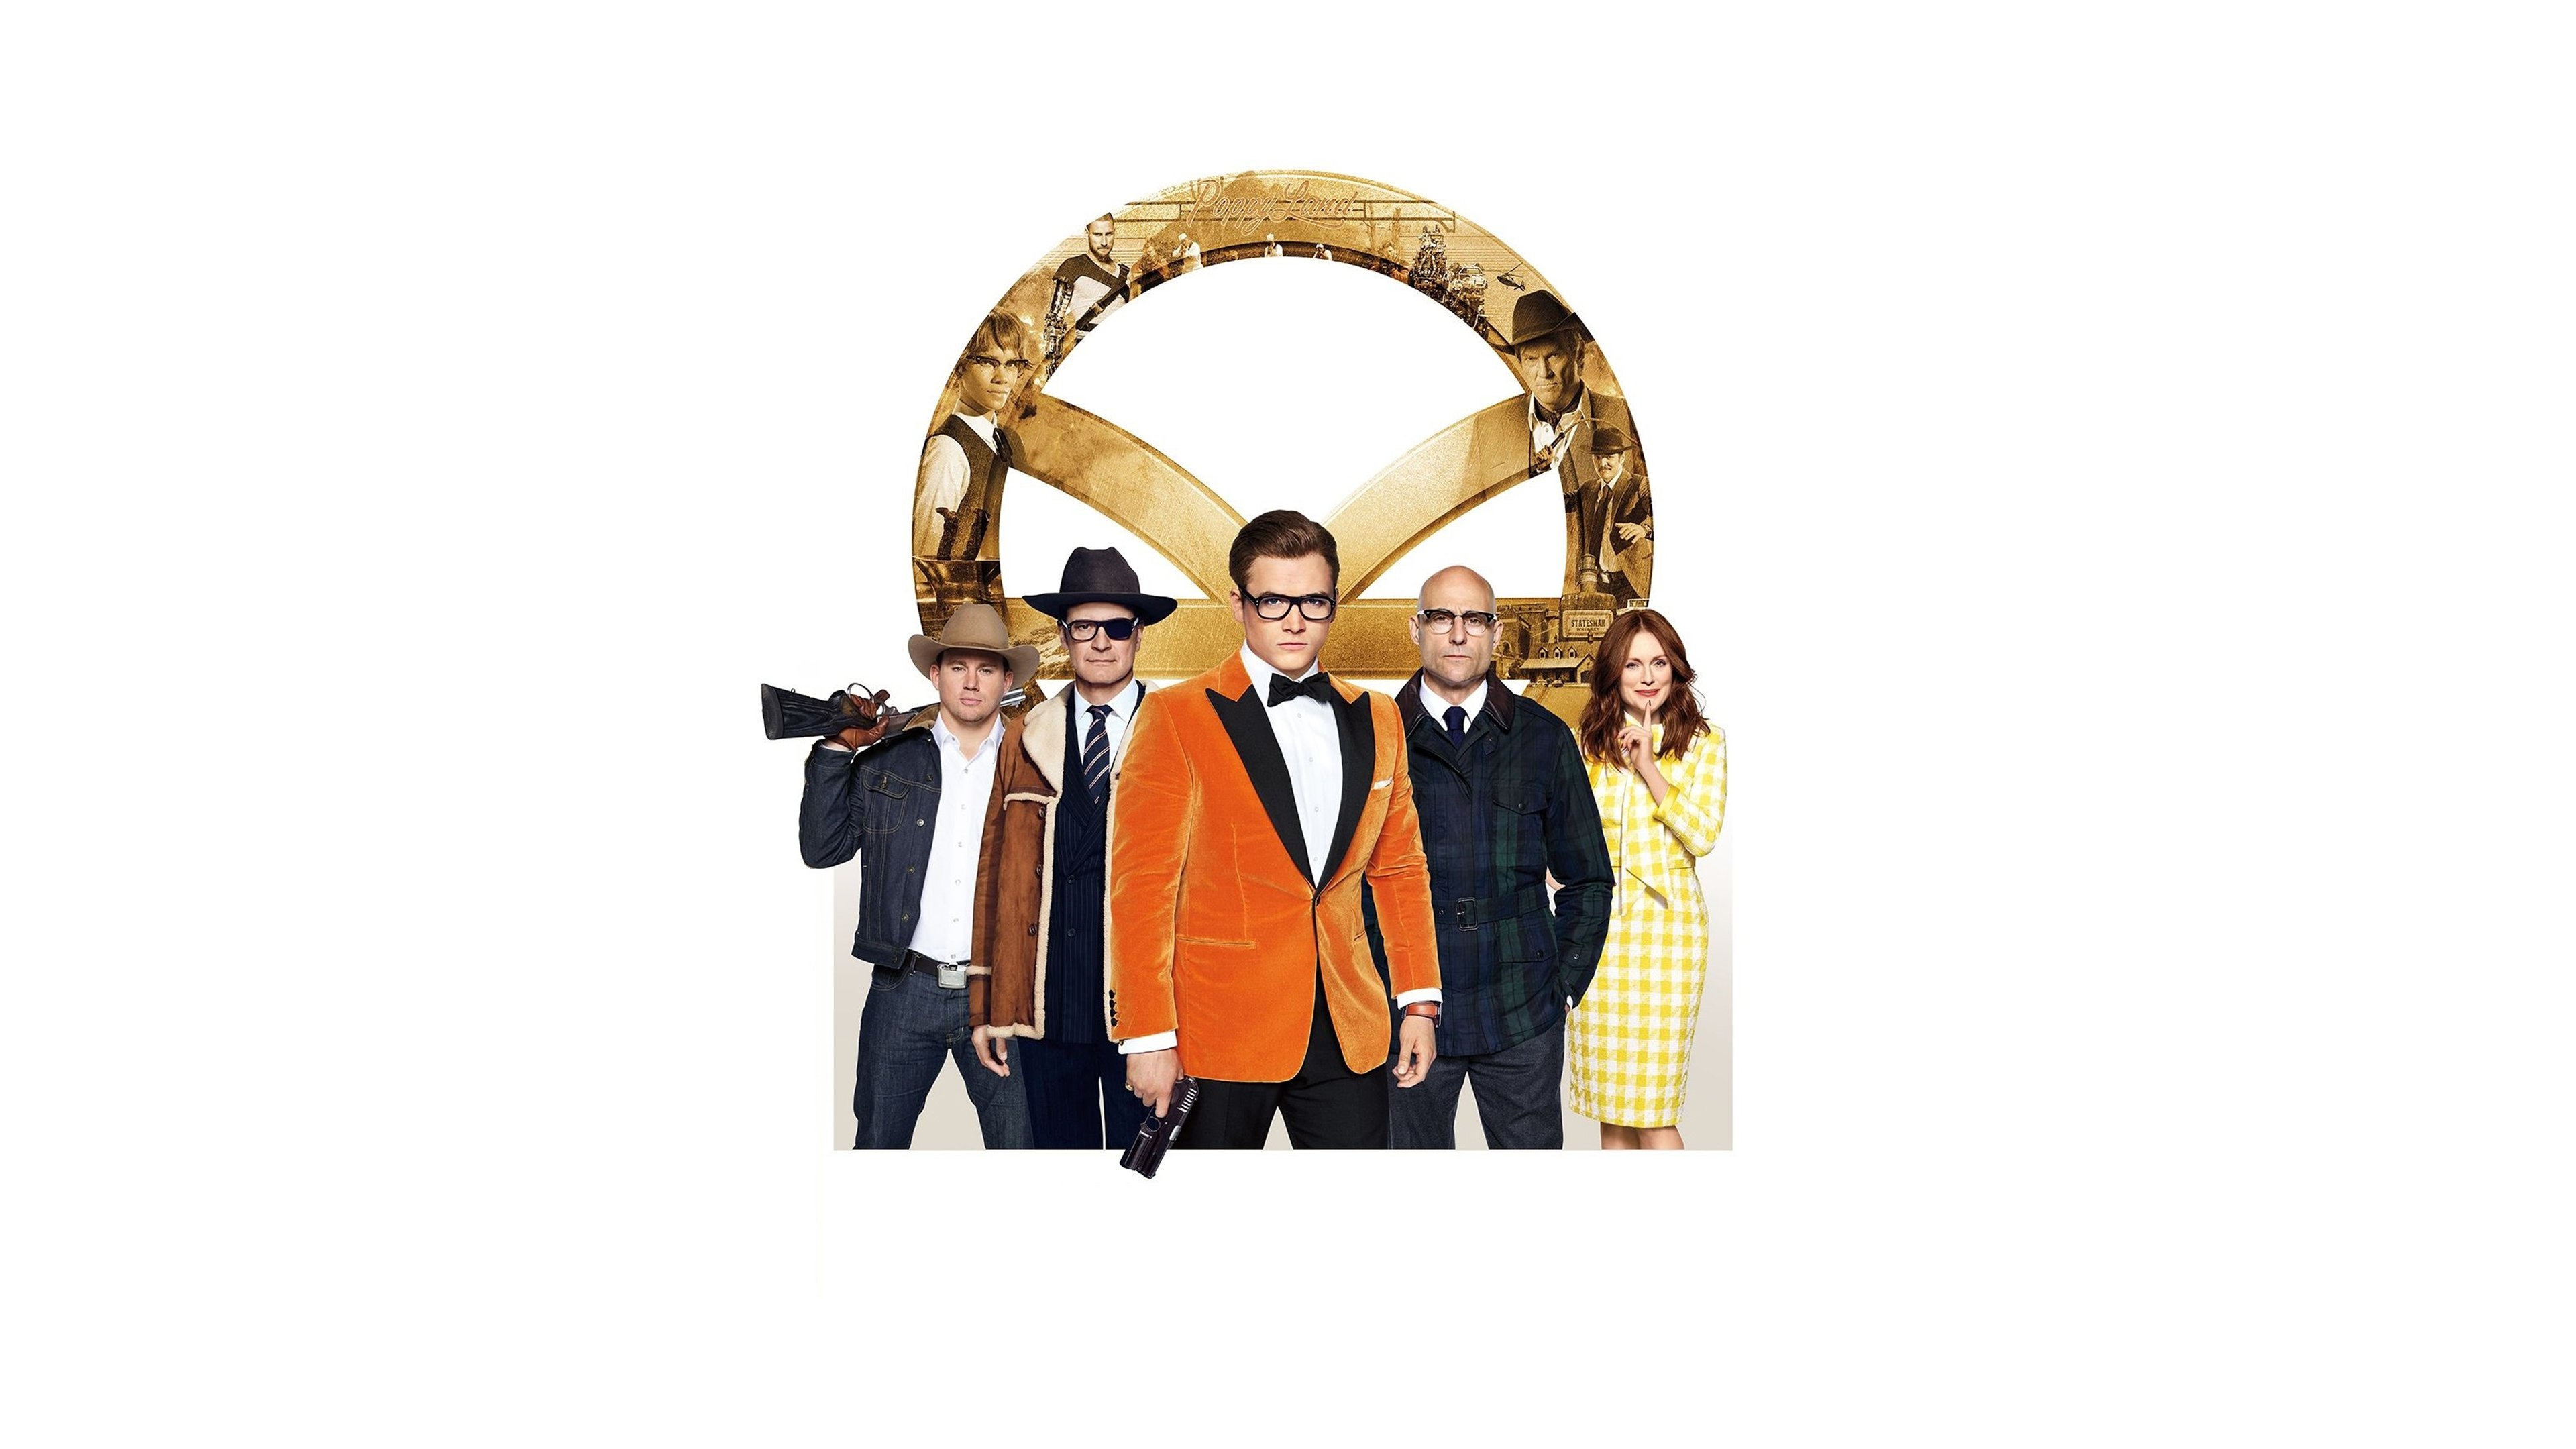 Kingsman The Golden Circle Wallpaper: Kingsman: The Golden Circle 4k Ultra HD Wallpaper